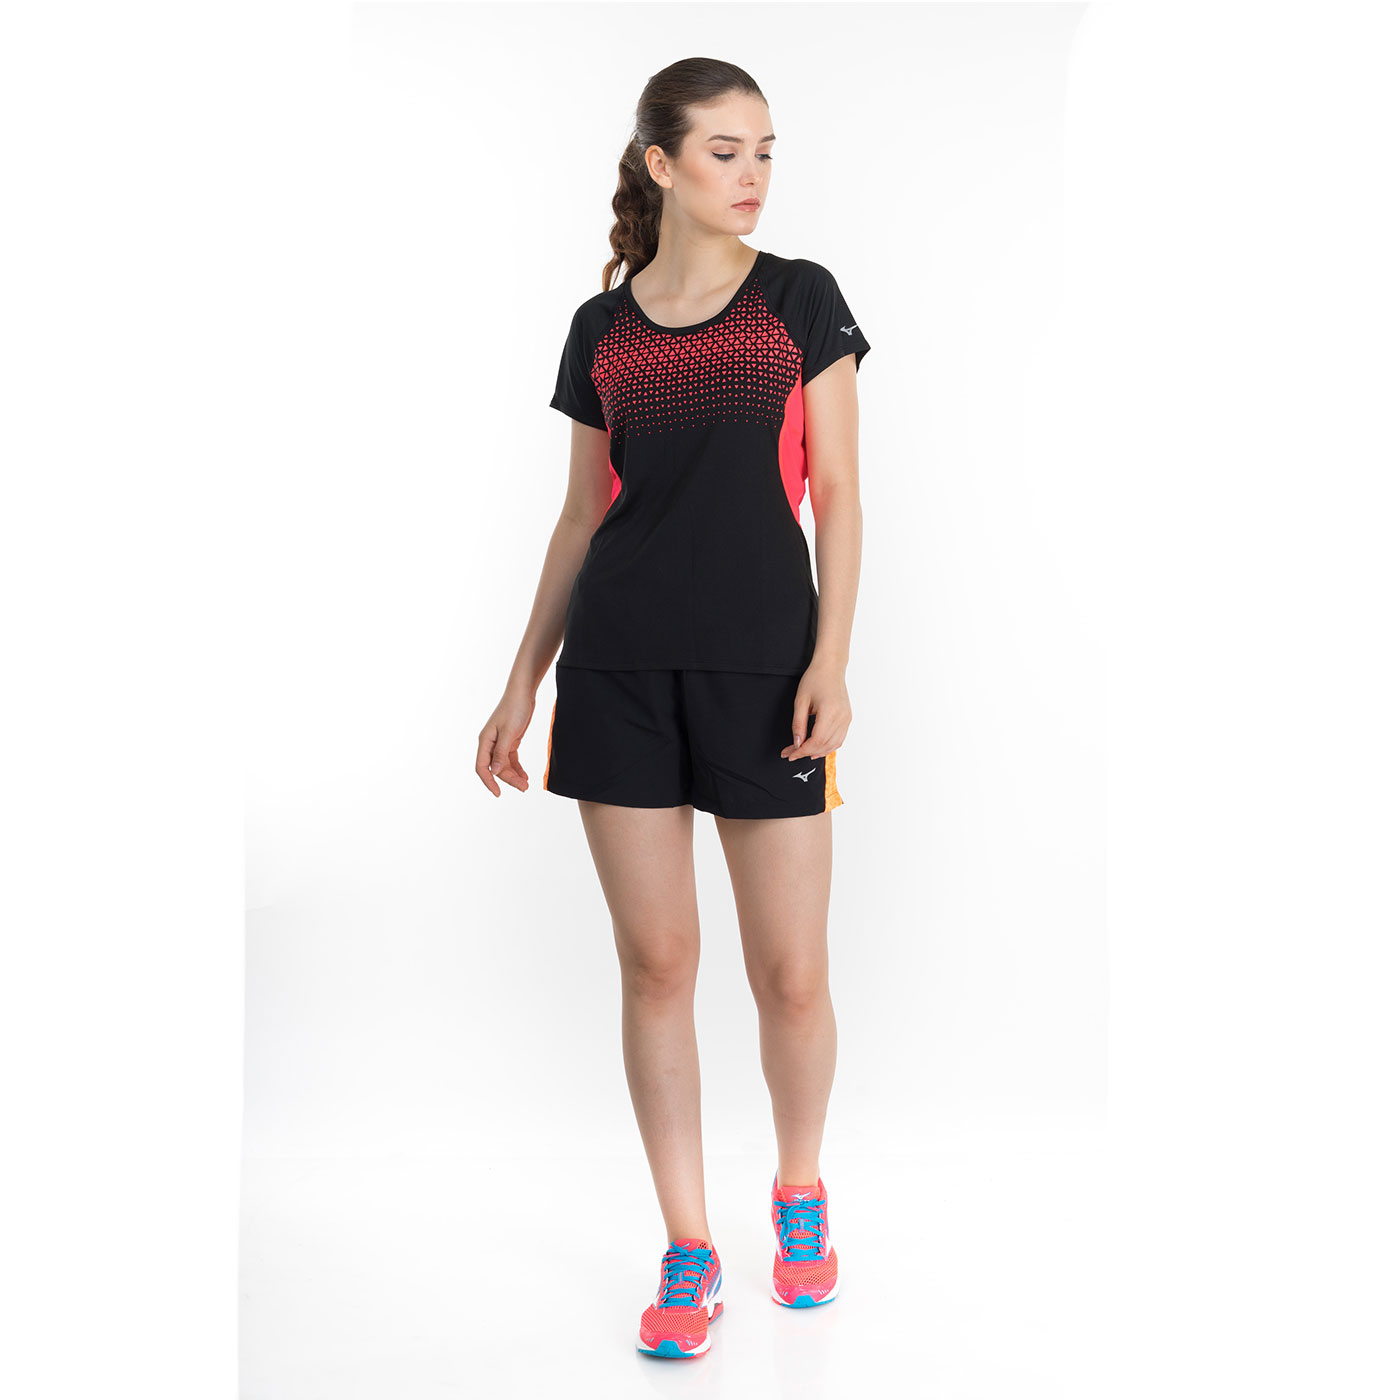 COOLTOUCH PHENIX TEE WOMEN